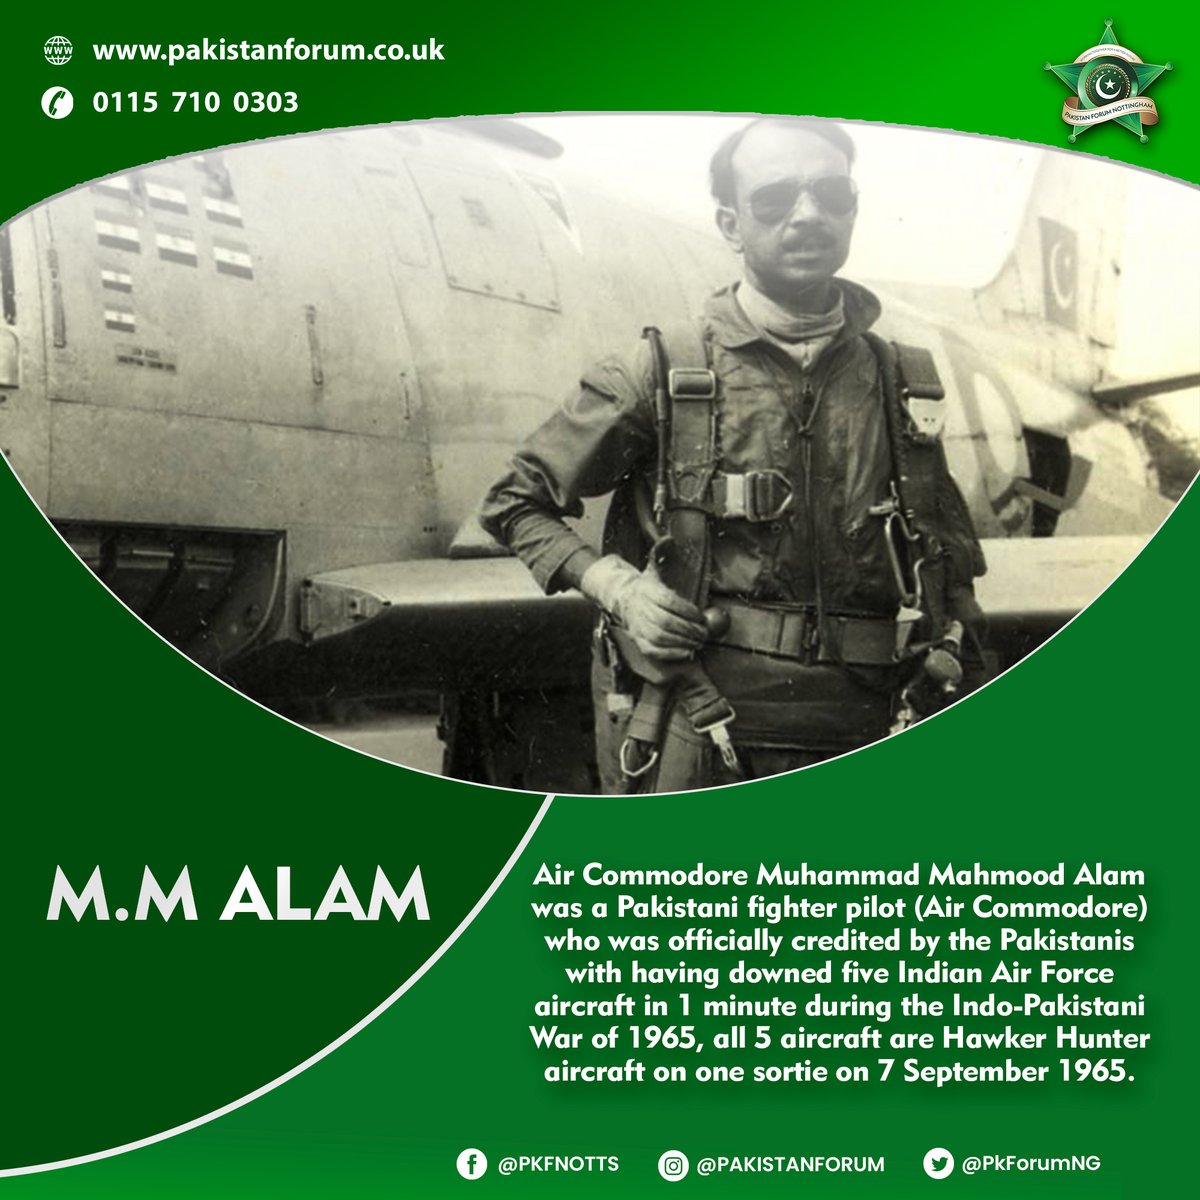 Air Commodore M.M Alam was a Pakistani fighter pilot!  #pakistanforum #mmalam #fighter https://t.co/tdfV8OLKna